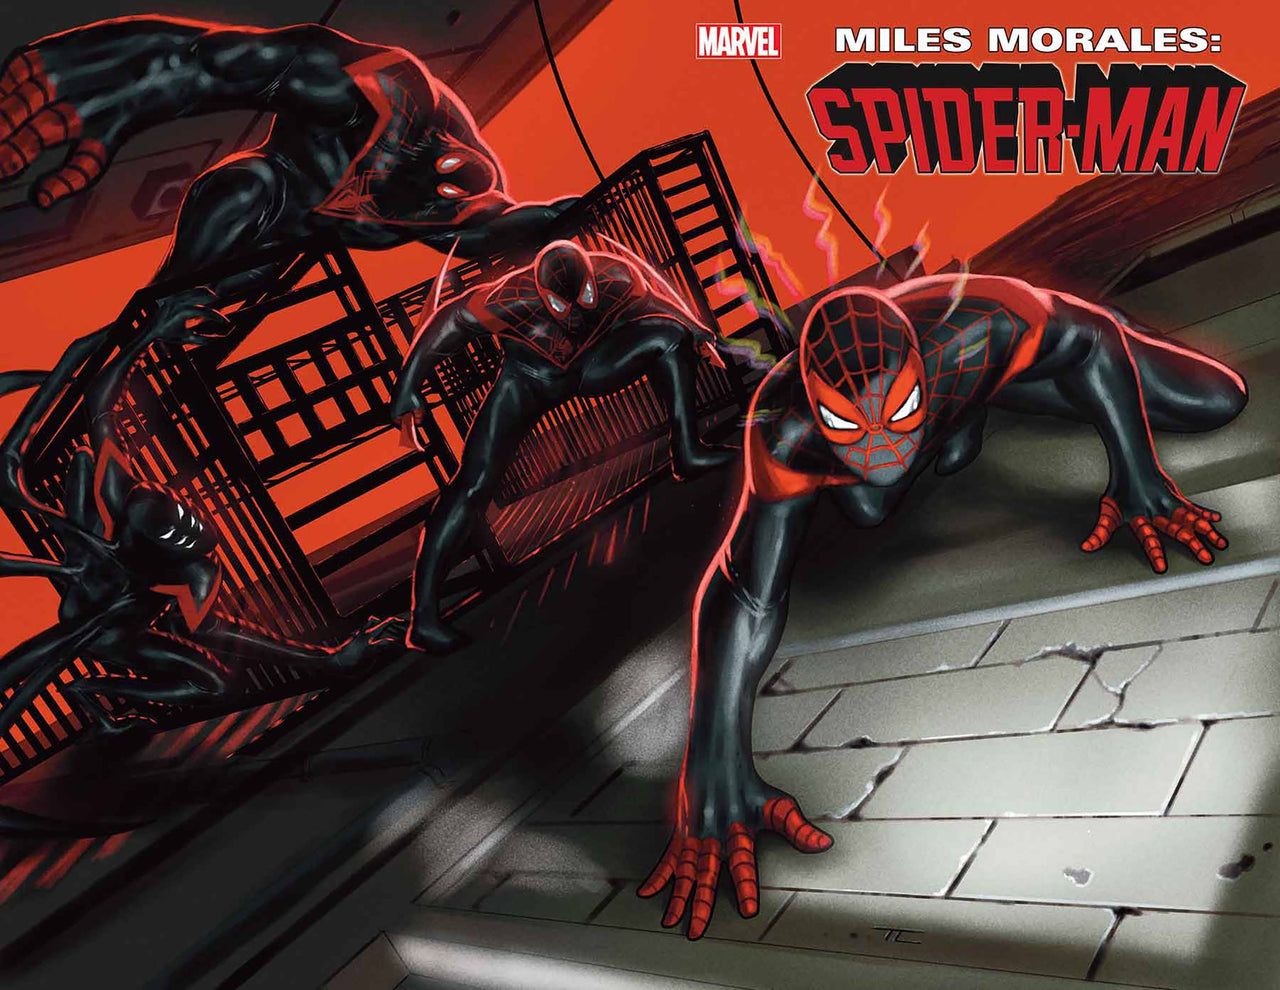 Miles Morales: Spider-Man Wraparound Cover issue #25  - SHIPS 05/15/21